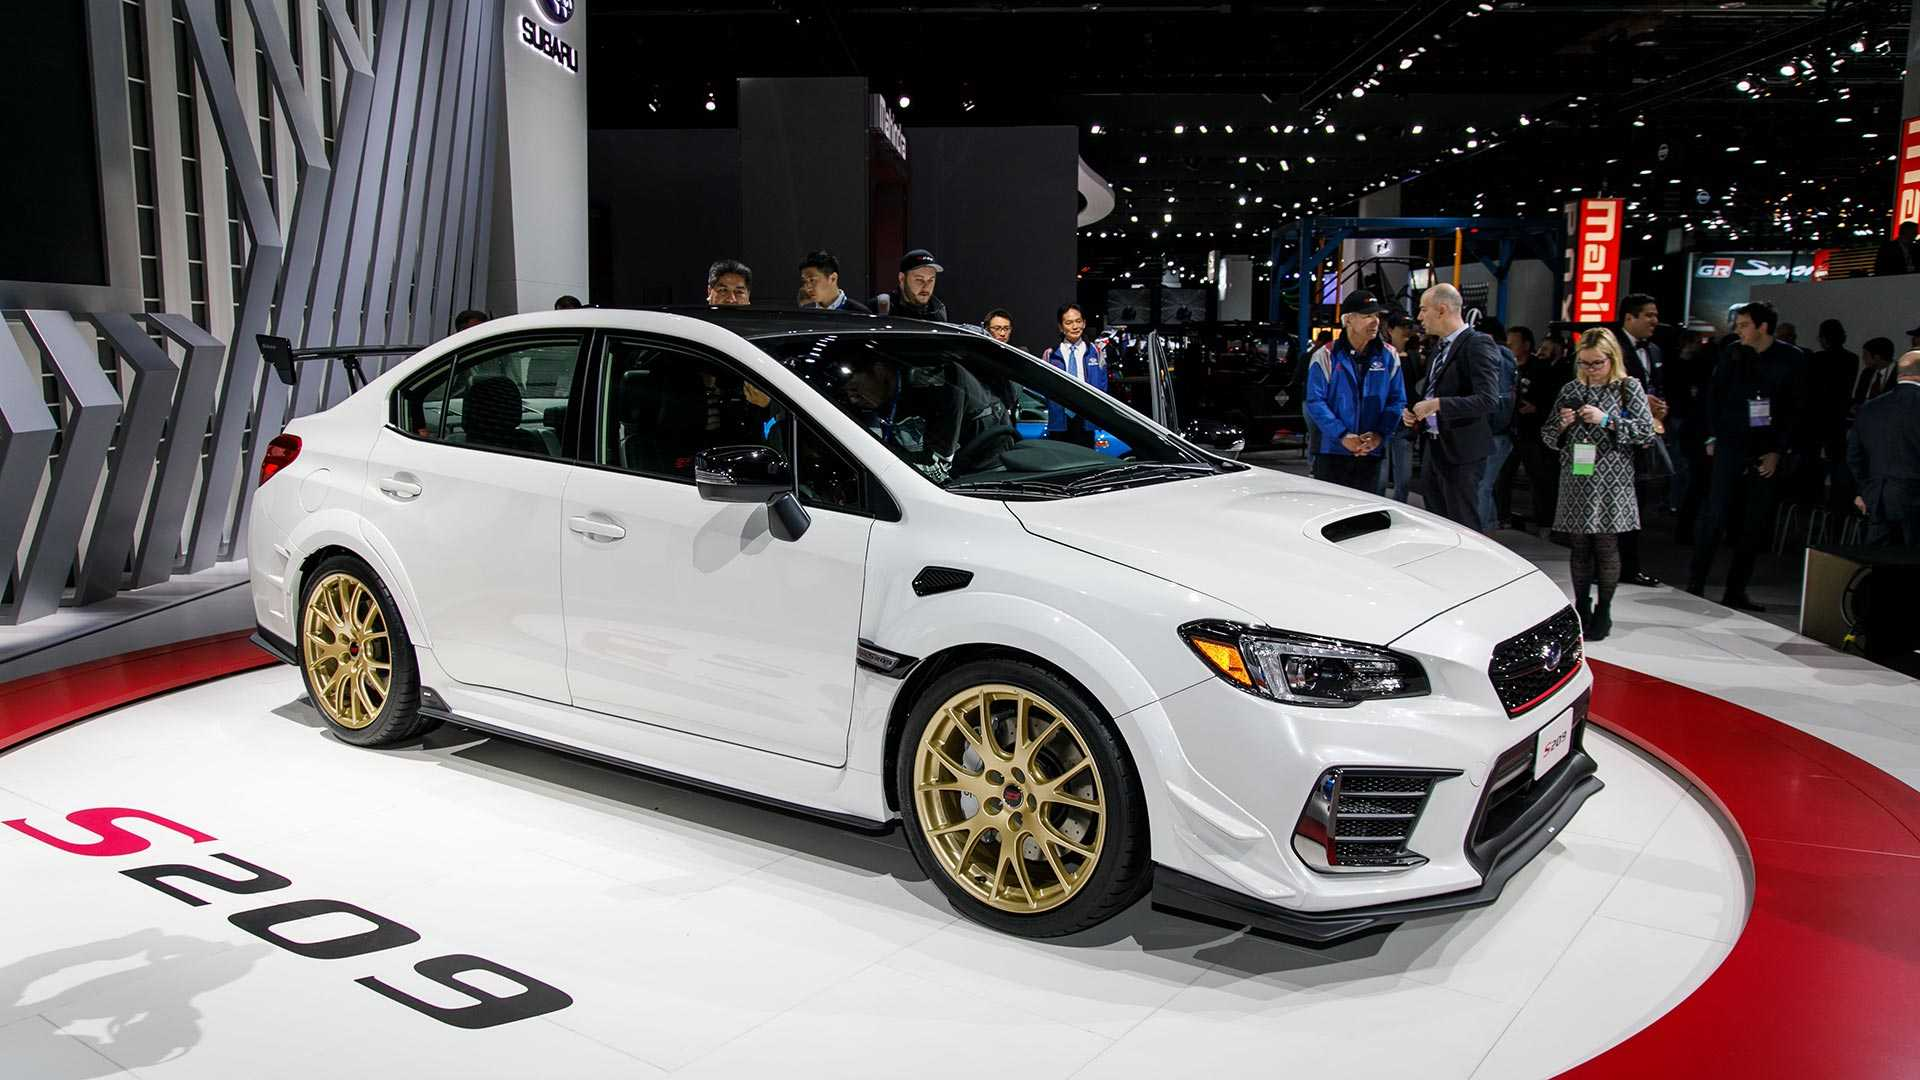 Subaru Wrx Sti S209 Arrives With 341 Hp Only 200 Coming To U S Update